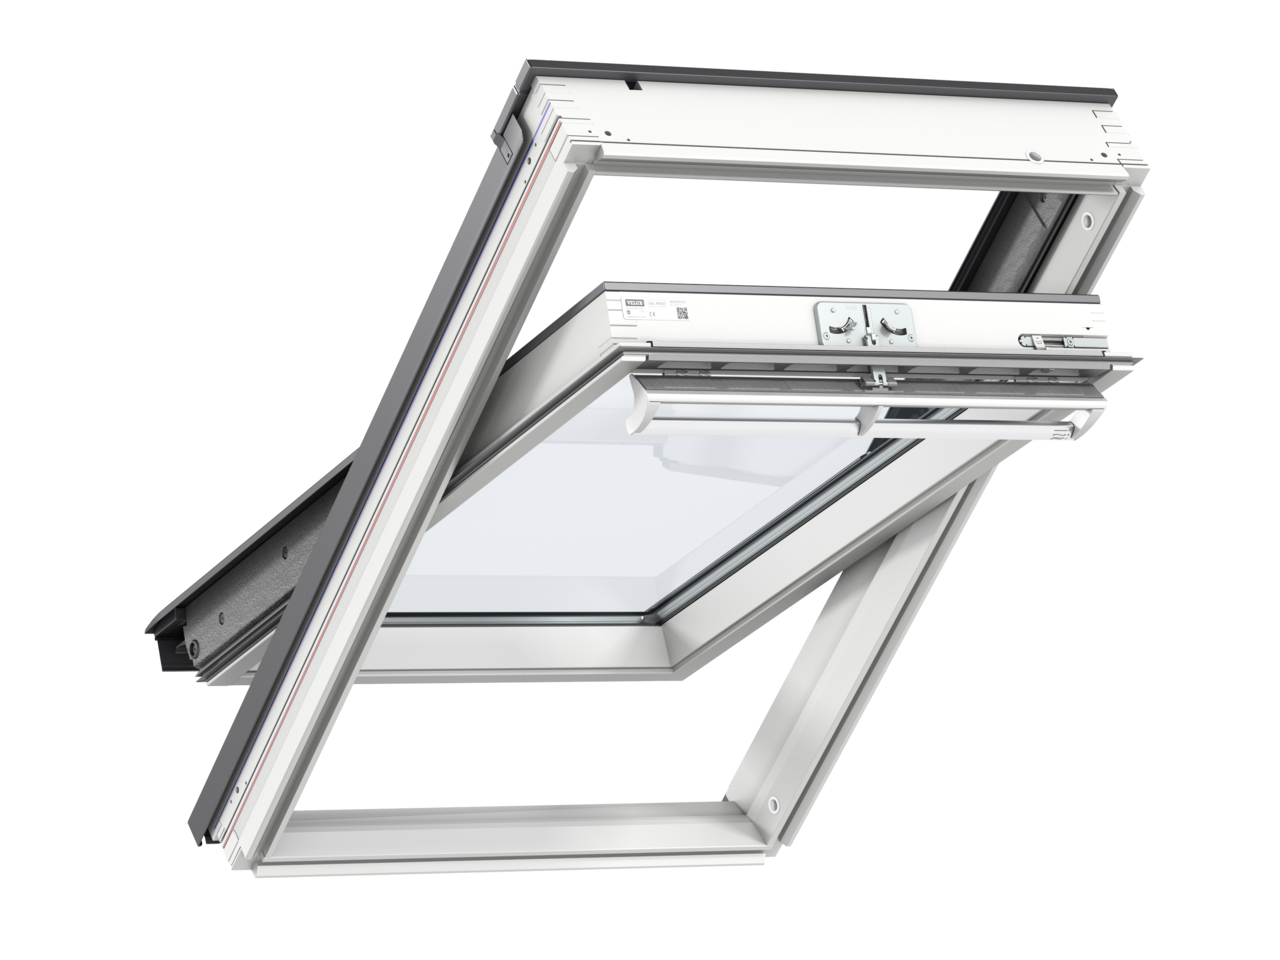 Velux GGL FK06 660 x 1180mm Centre Pivot 60Pane Roof Window - White Painted